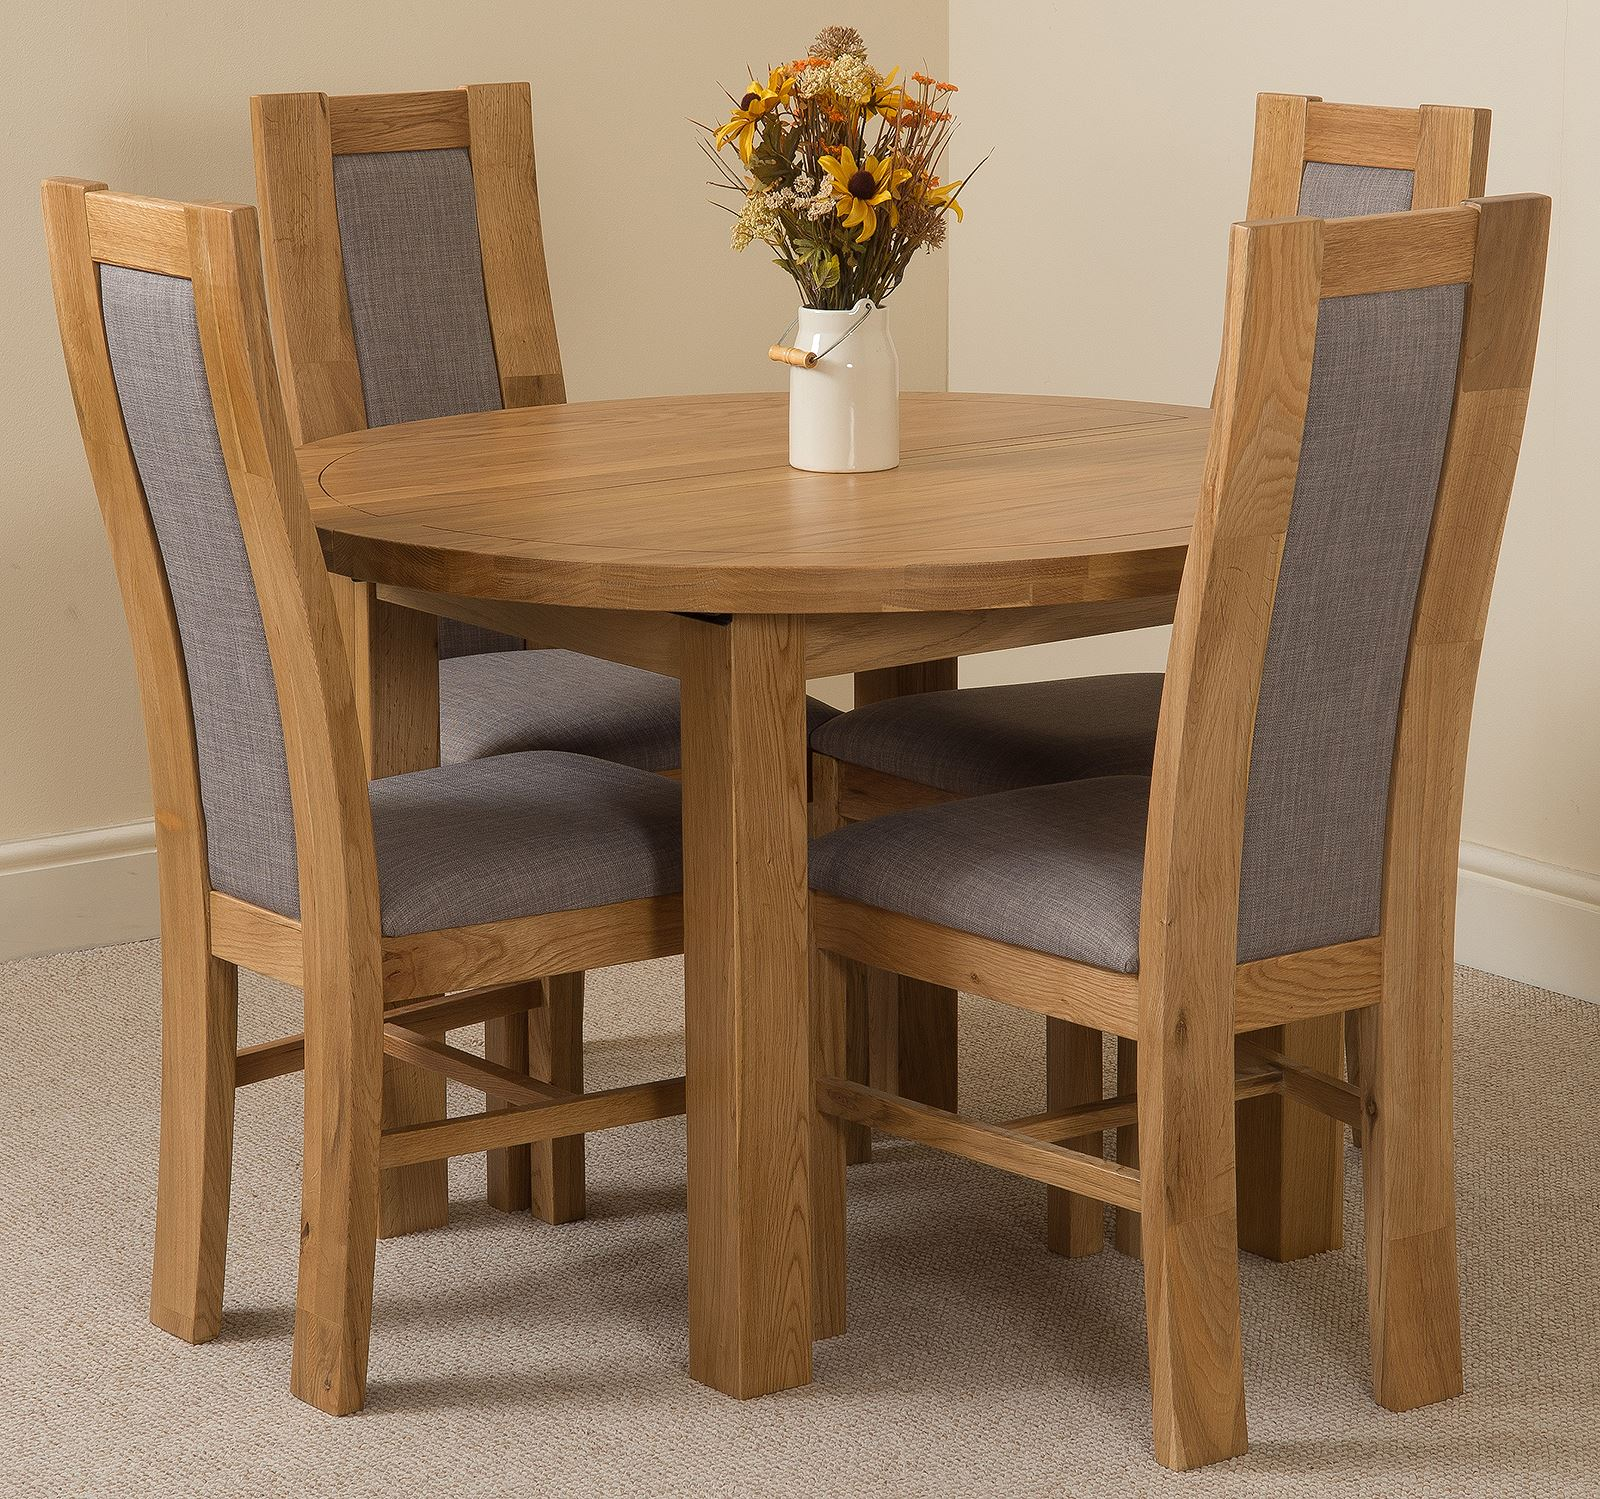 Edmonton Extending Oval Solid Oak Dining Table 4 Fabric Chairs